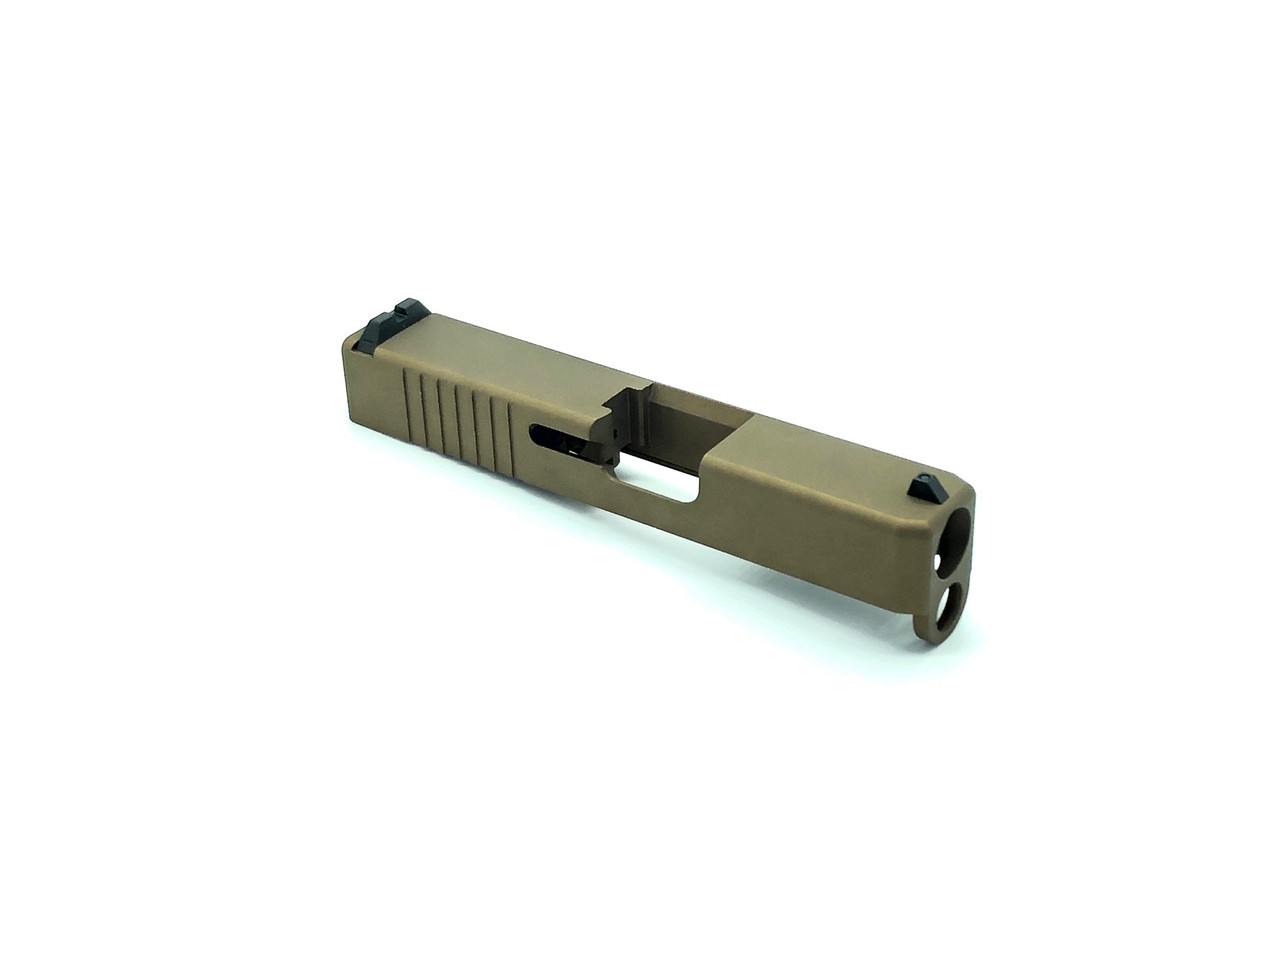 MDX Arms V1 Stripped Slides - G27 BRONZE 1